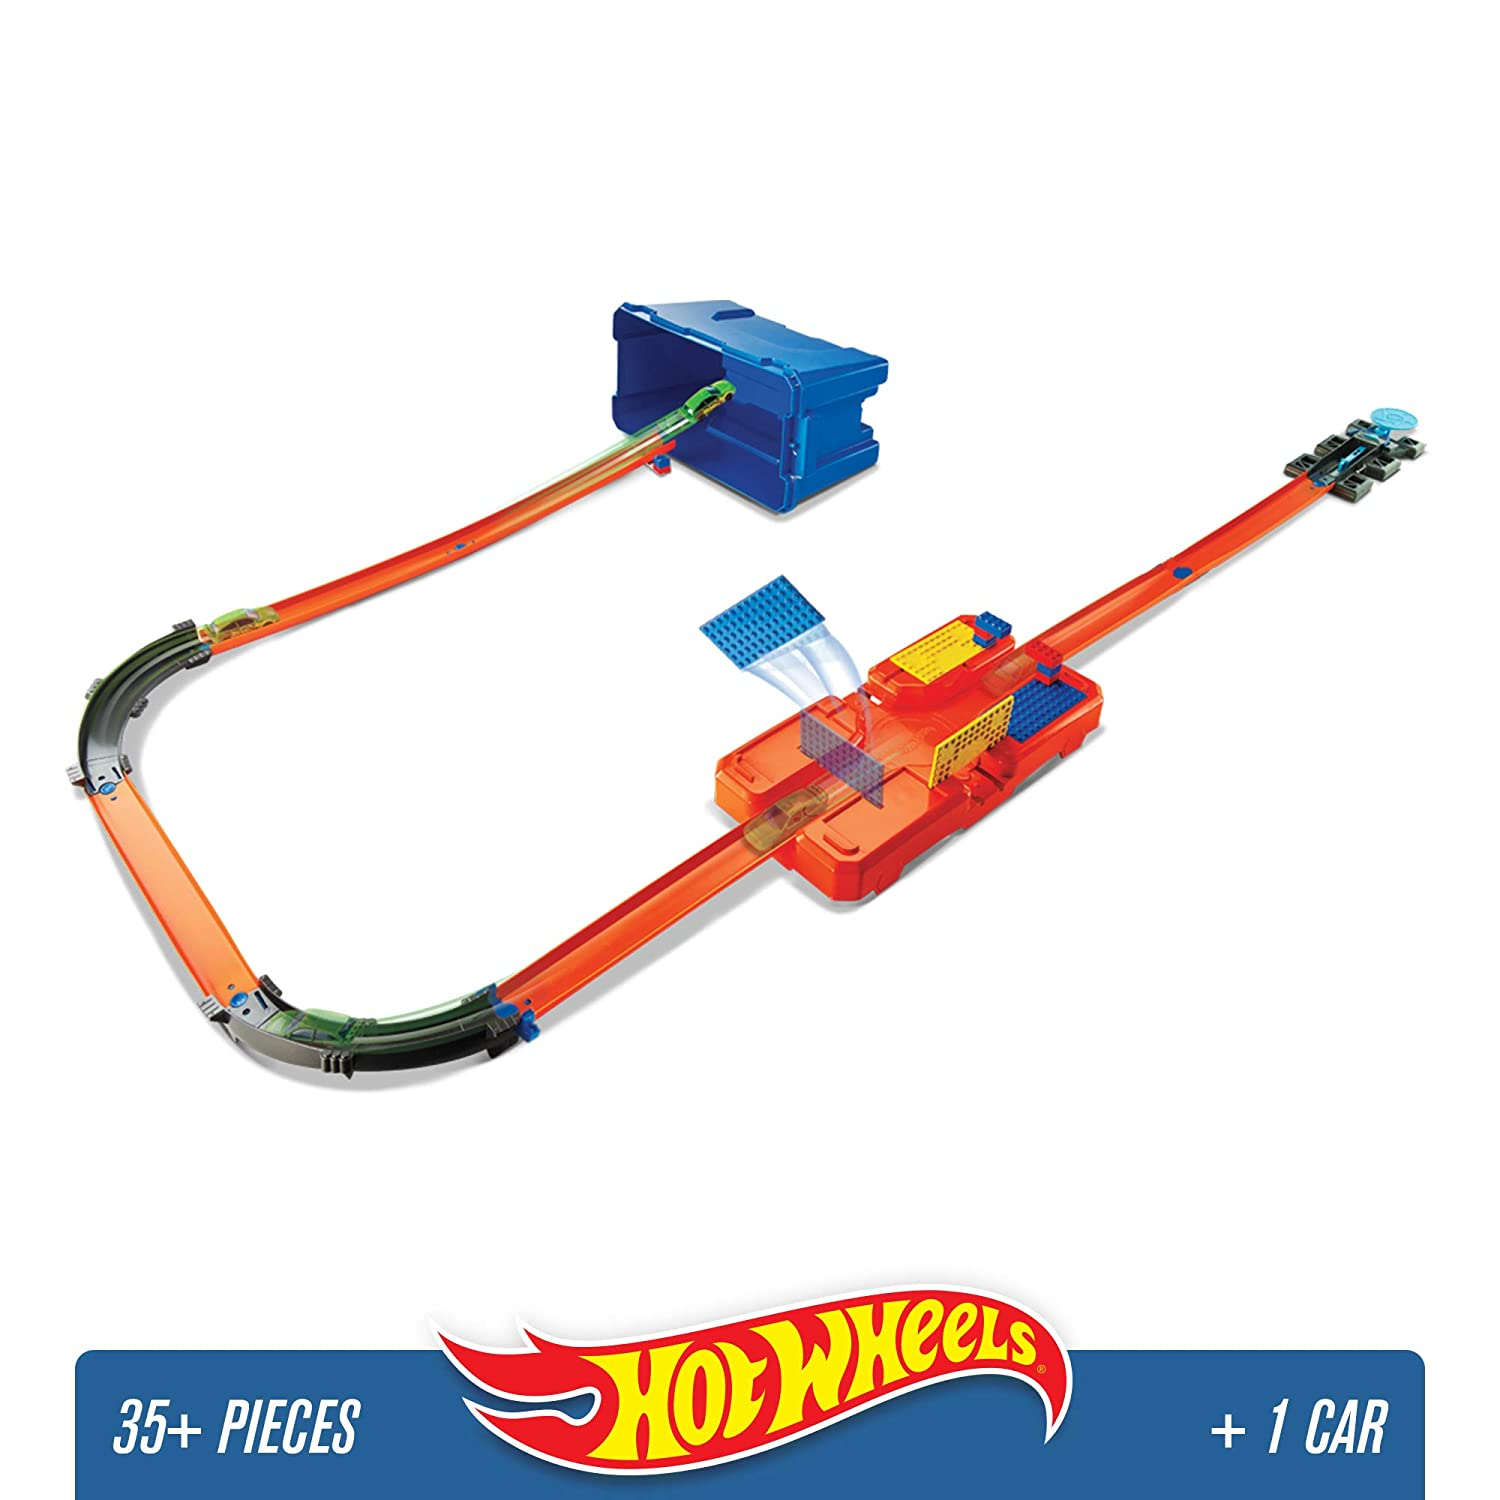 Hot Wheels DWW95 Track Builder Stunt Box, Connectable Tracks and Mini Toy Car with Track Set Mattel